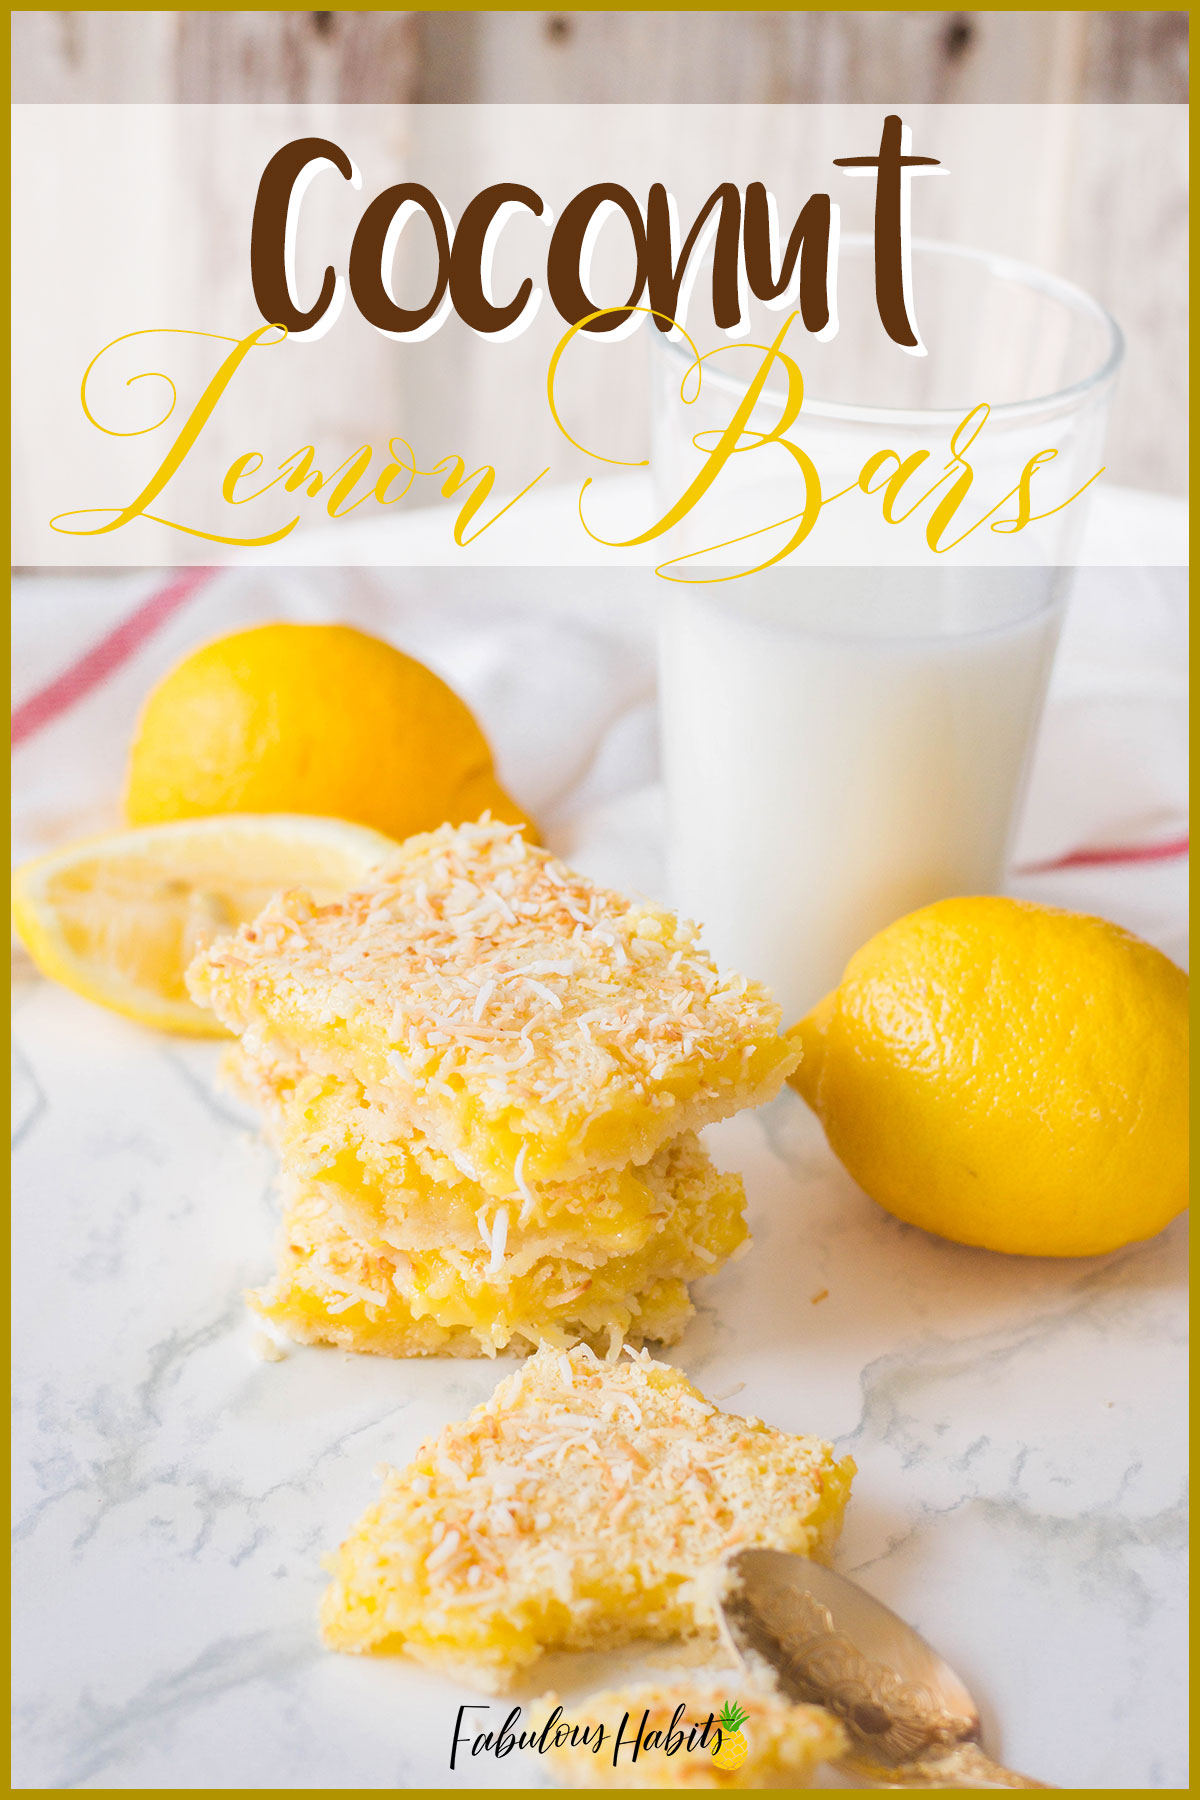 It's like a tropical vacation in your mouth - Coconut Lemon Bars! #lemonbars